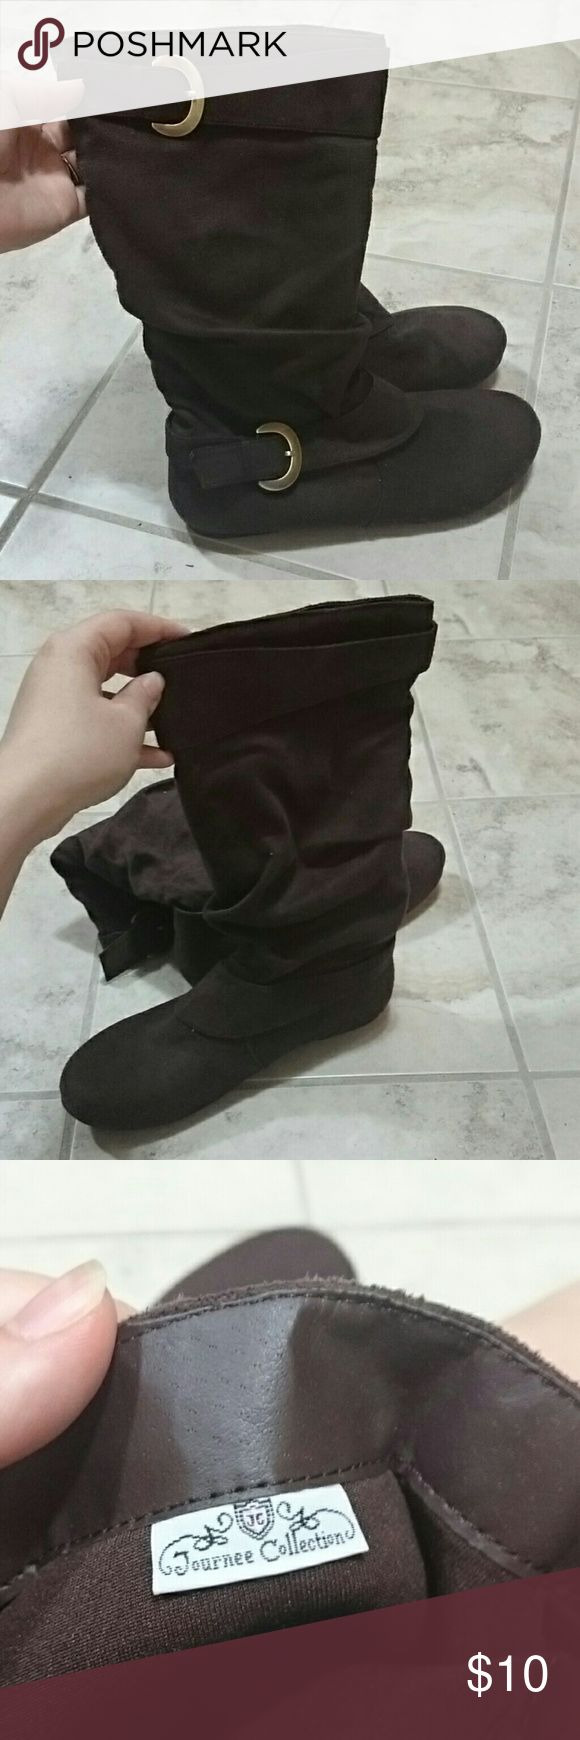 """New brown slouchy boot with gold buckles New without box brown slouchy boots. Brand is Journee Collection, purchased from Target. These boots have no internal structure and are made of a suede-type material. From the floor to the top of the boot they are about 13.5"""", though they would slouch lower than that on. Journee Collection Shoes"""